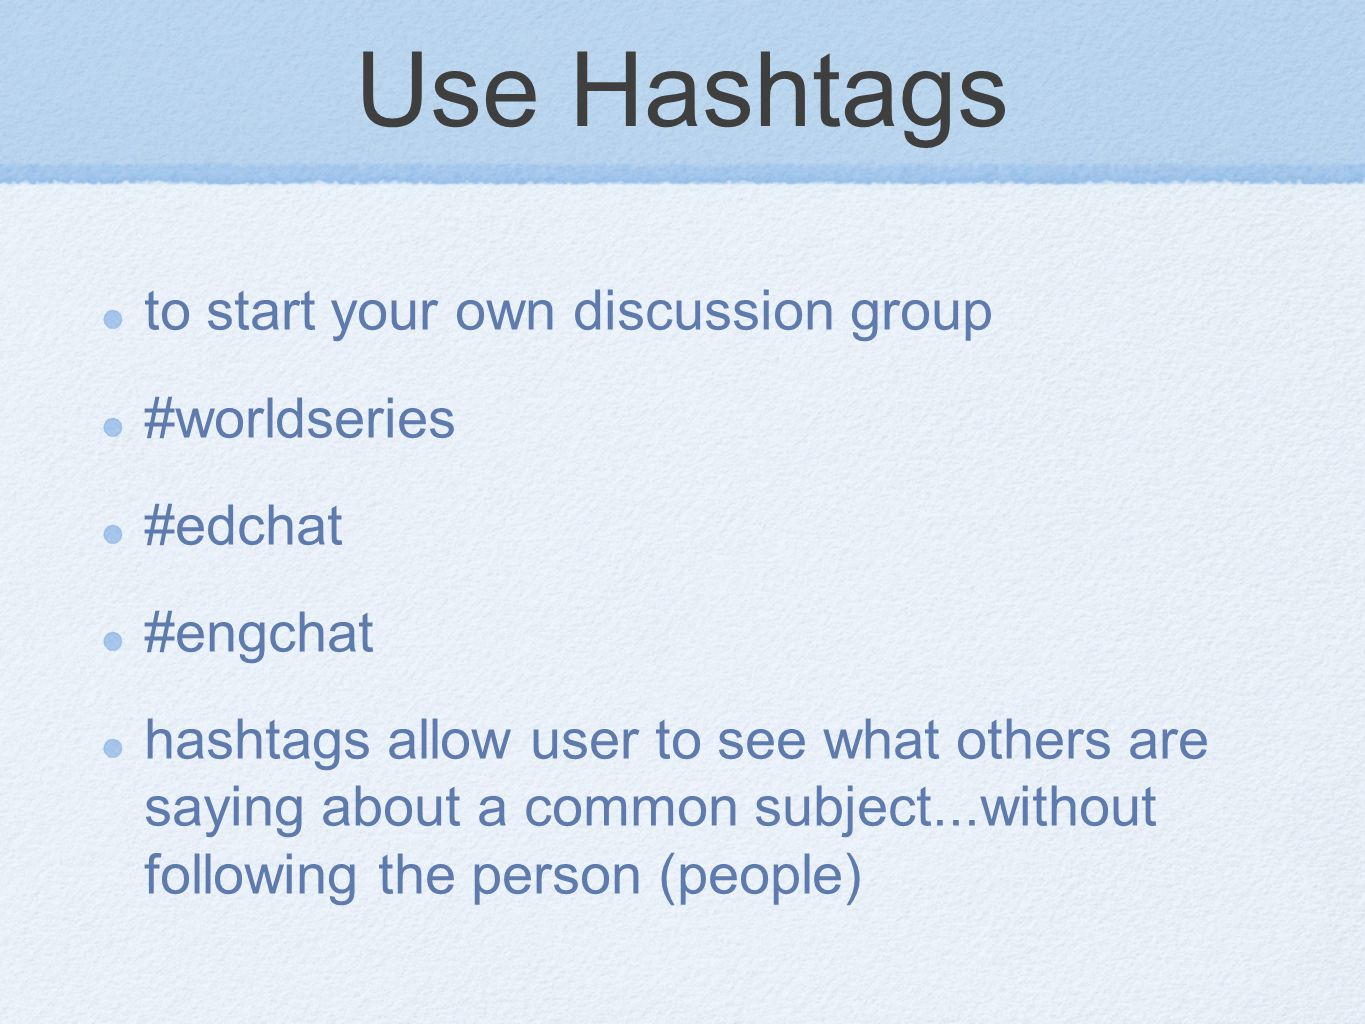 Use Hashtags to start your own discussion group #worldseries #edchat #engchat hashtags allow user to see what others are saying about a common subject